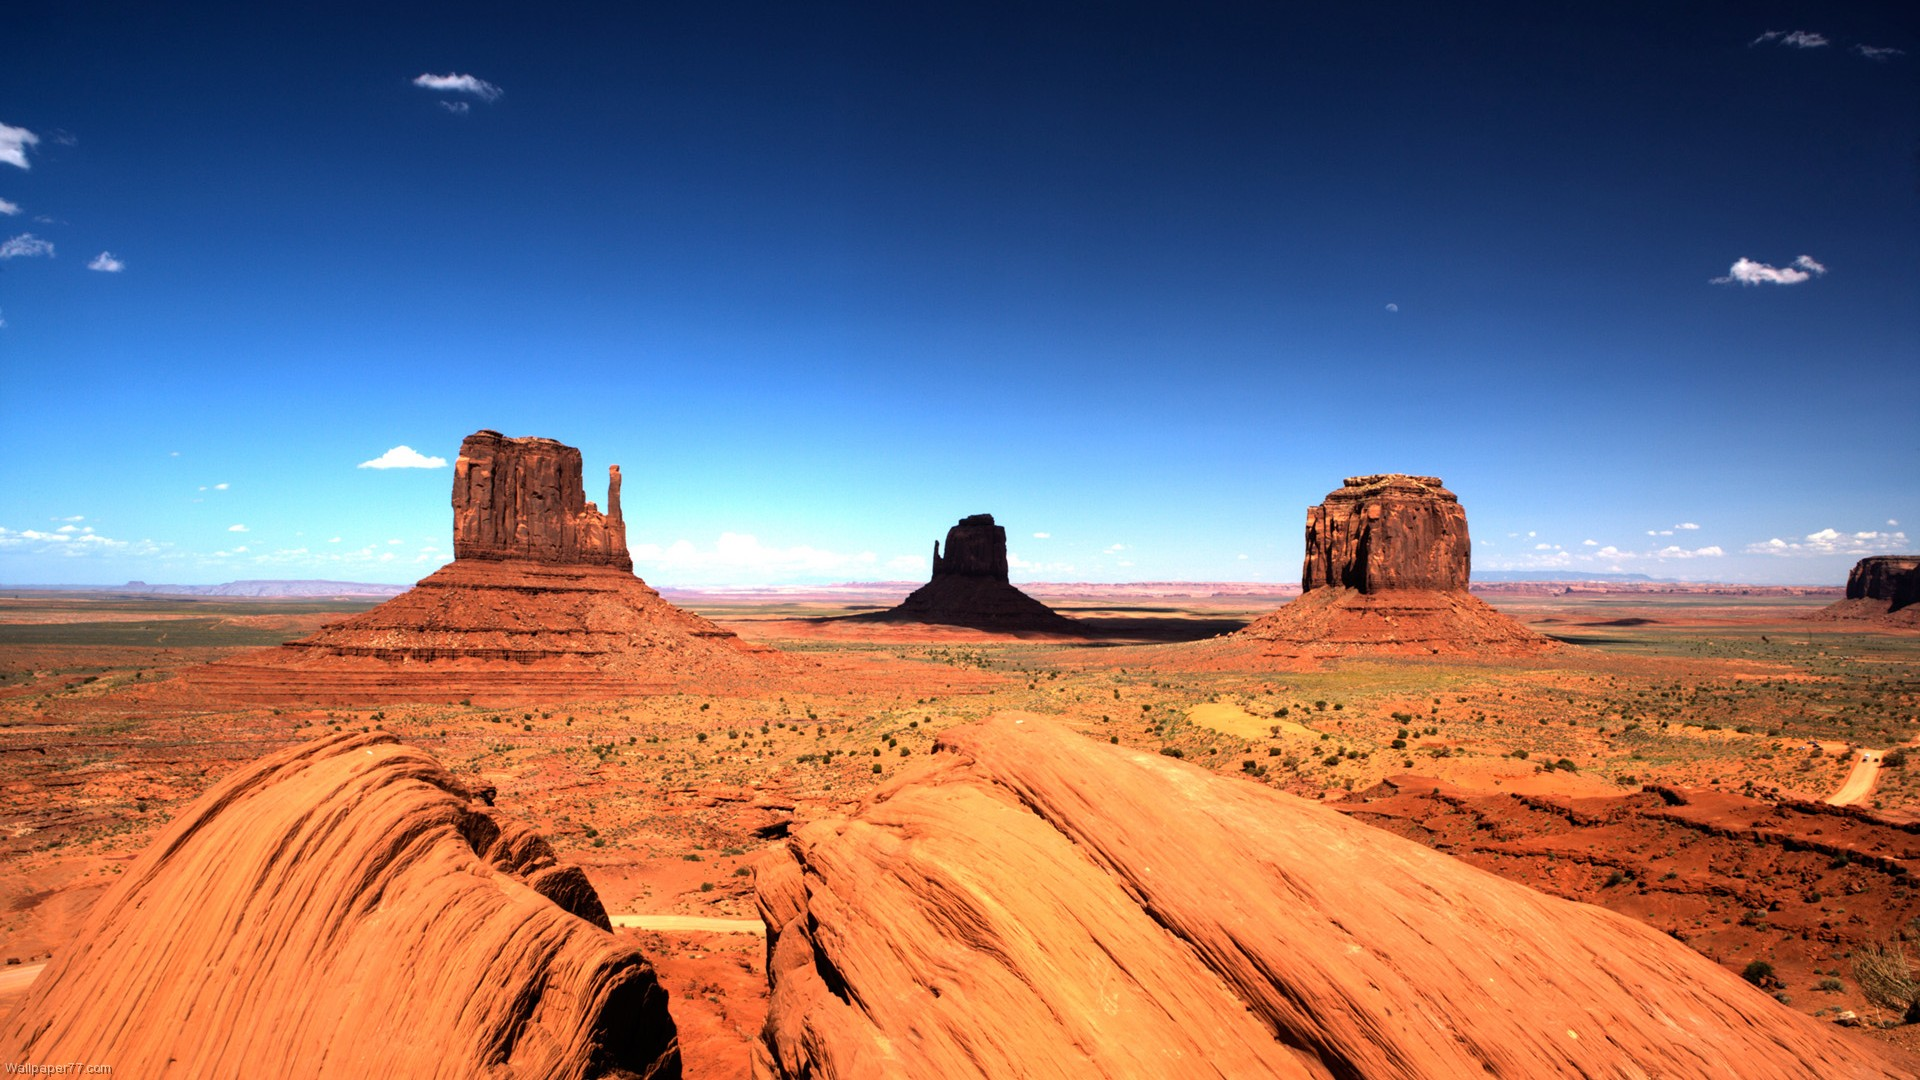 Amazing Desert Landscape Wallpaper